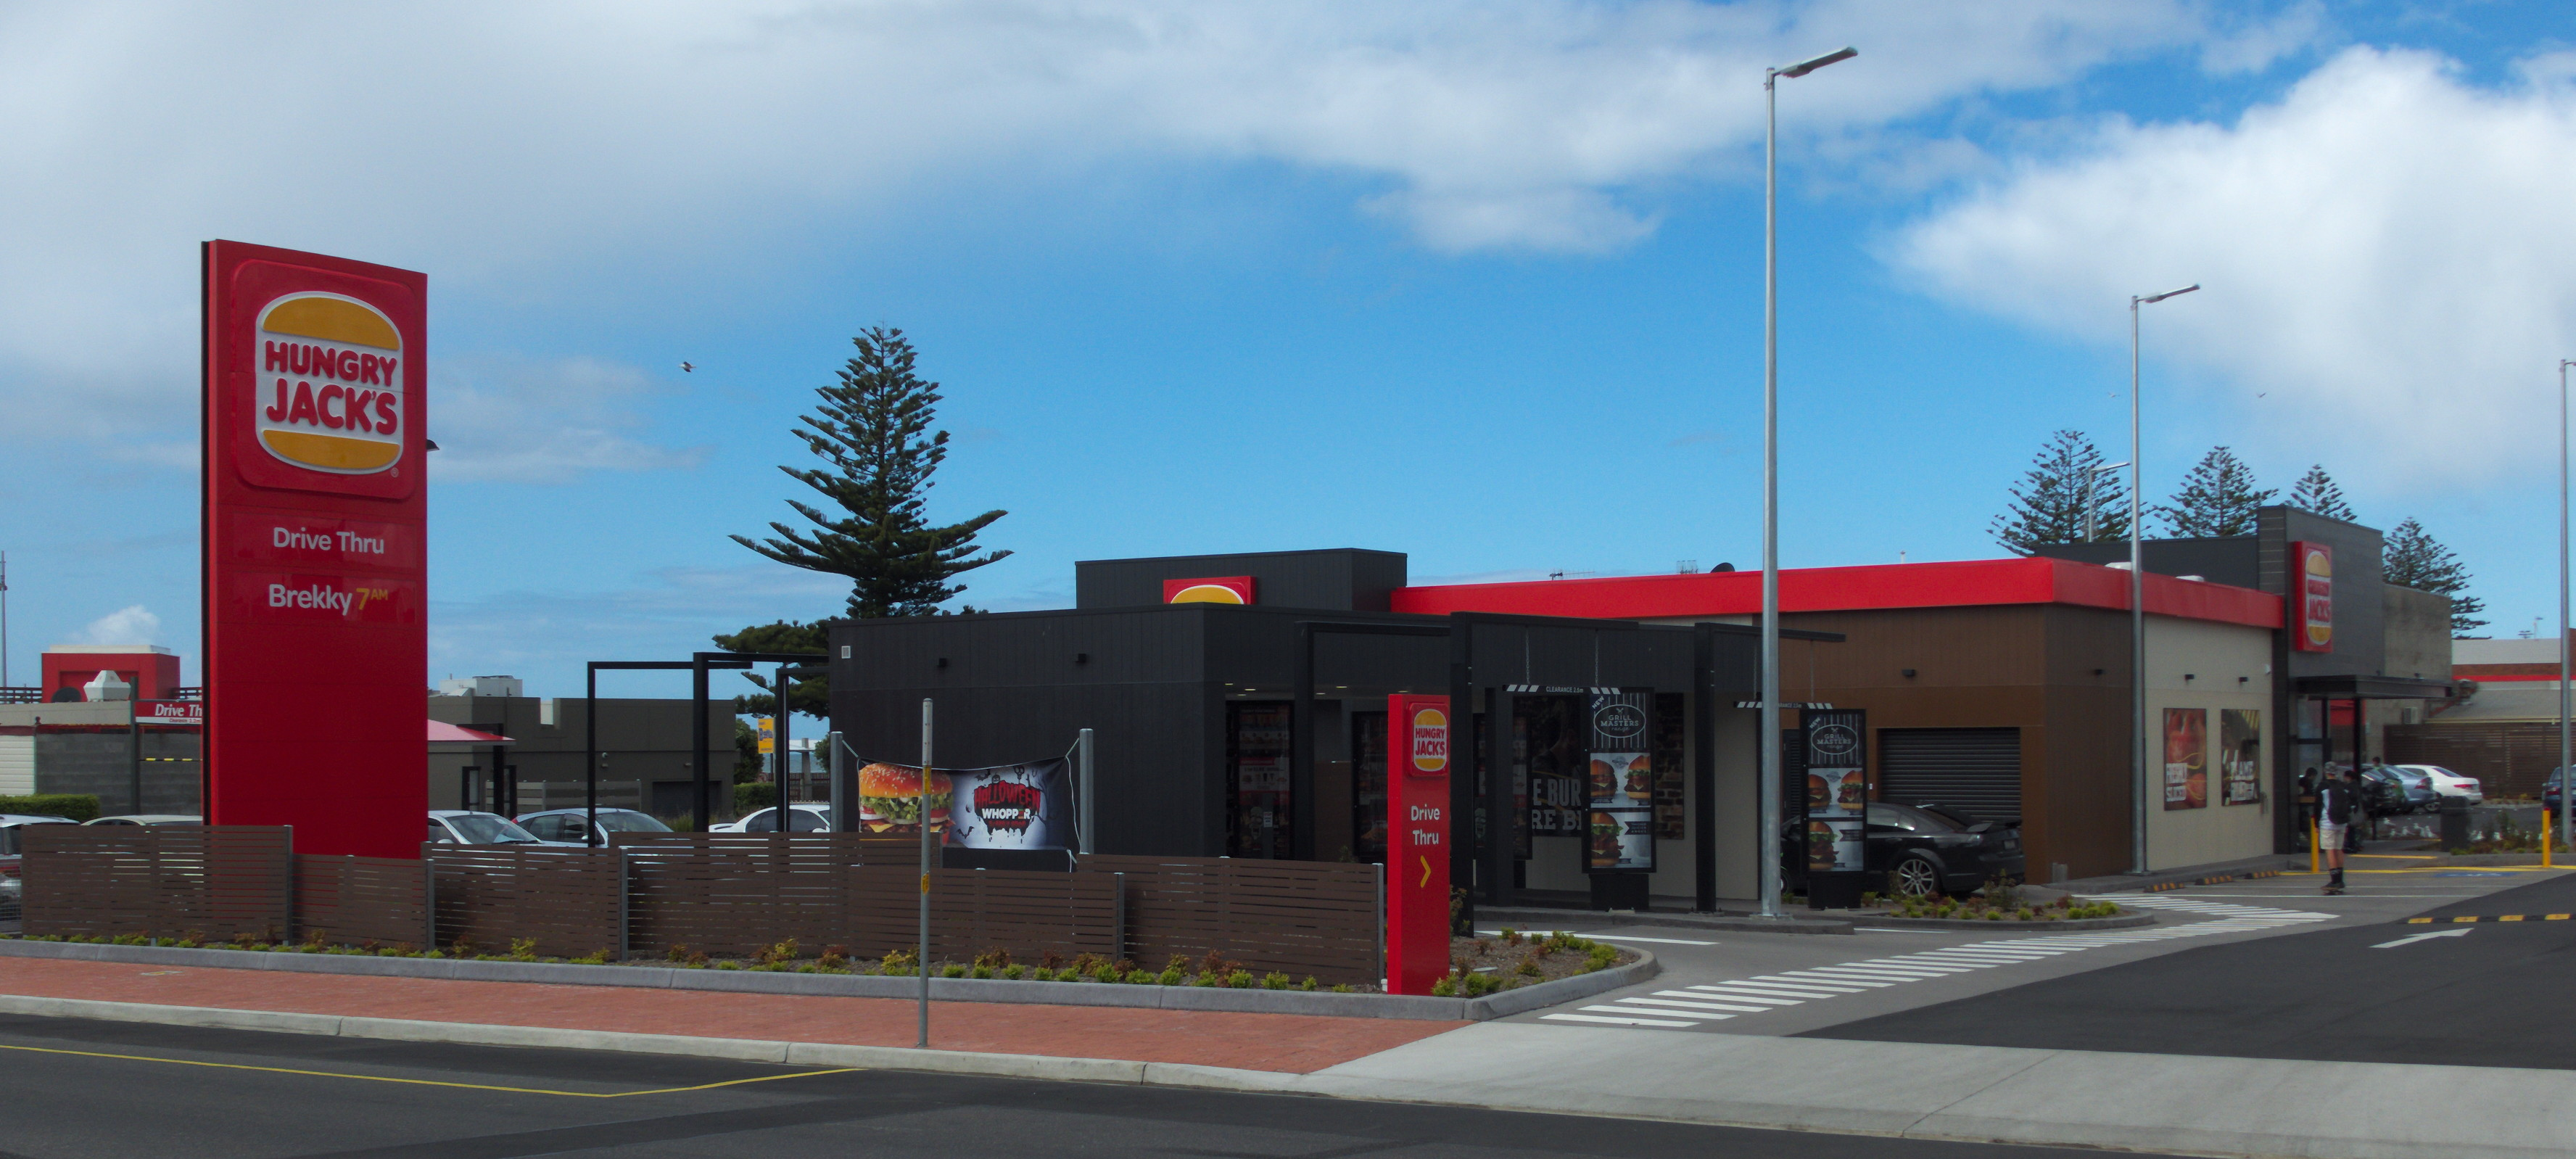 file hungry jacks burnie 20161019 001 jpg wikimedia commons